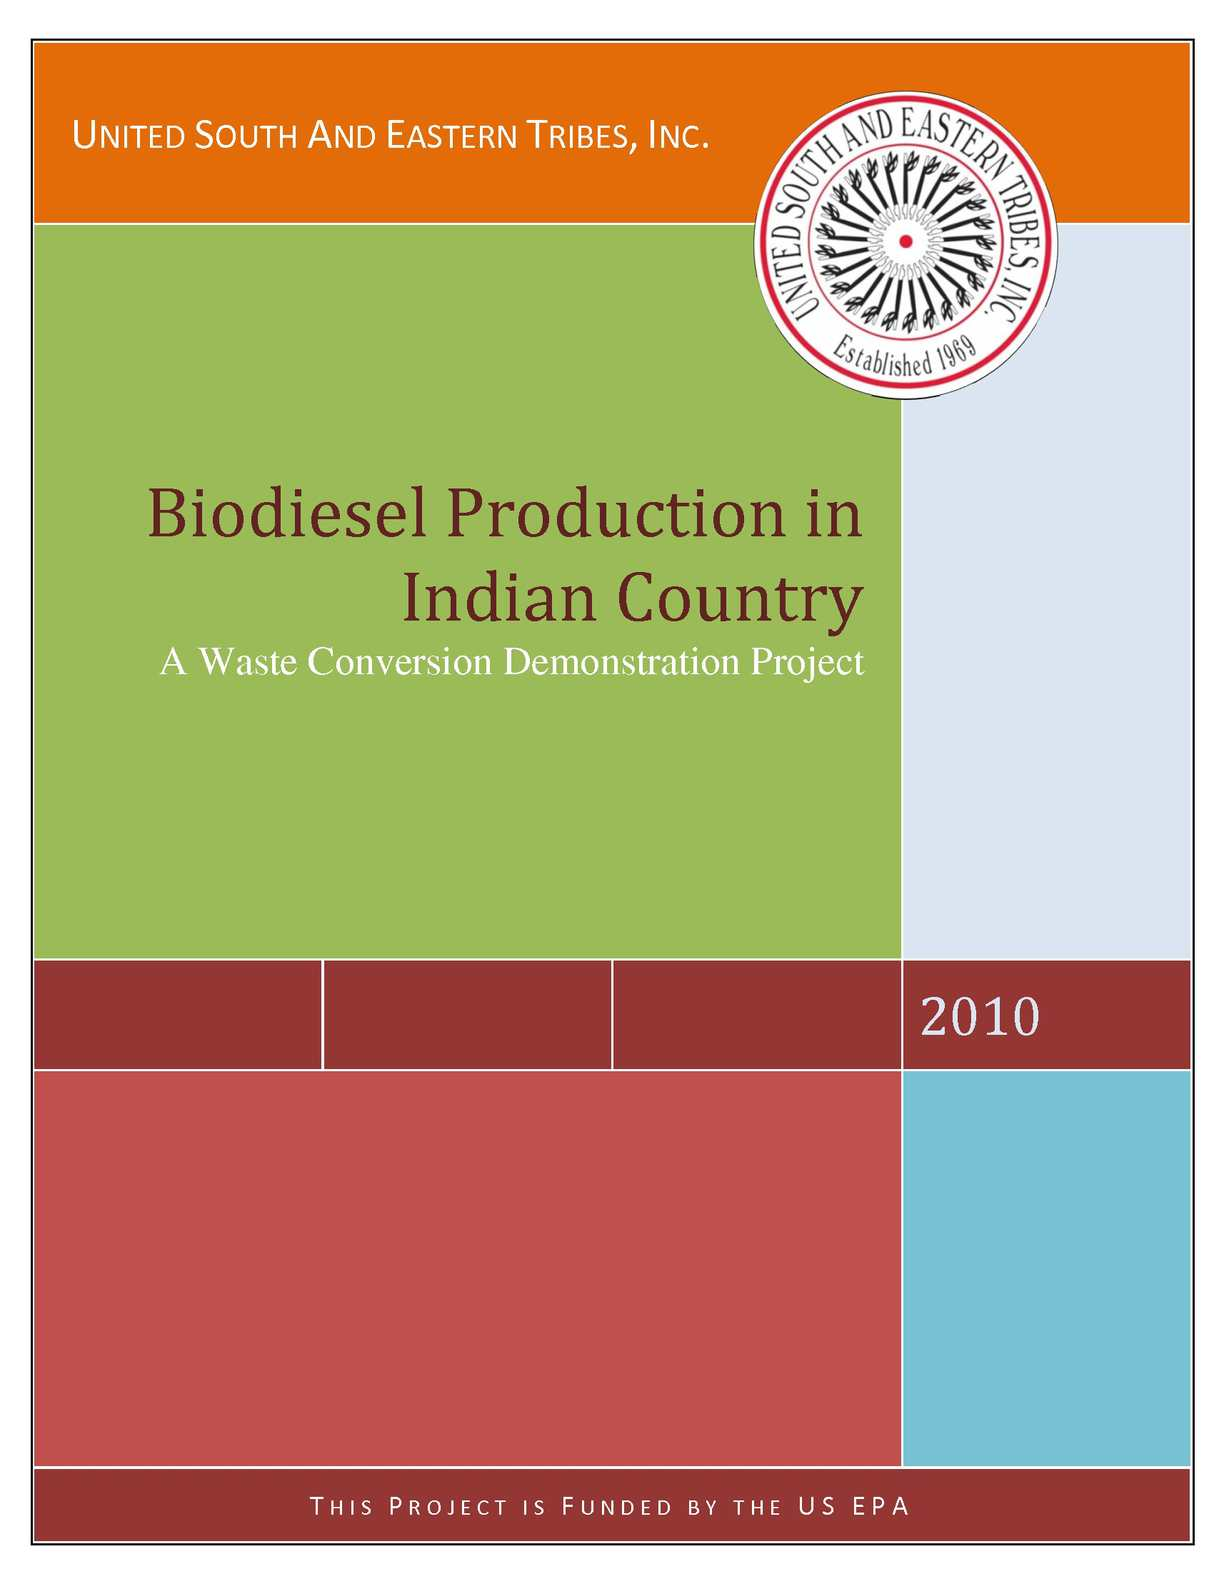 Calamo Biodiesel Production In Indian Country Results Potato Battery Diagram 42 Testingthe Polarity Of A